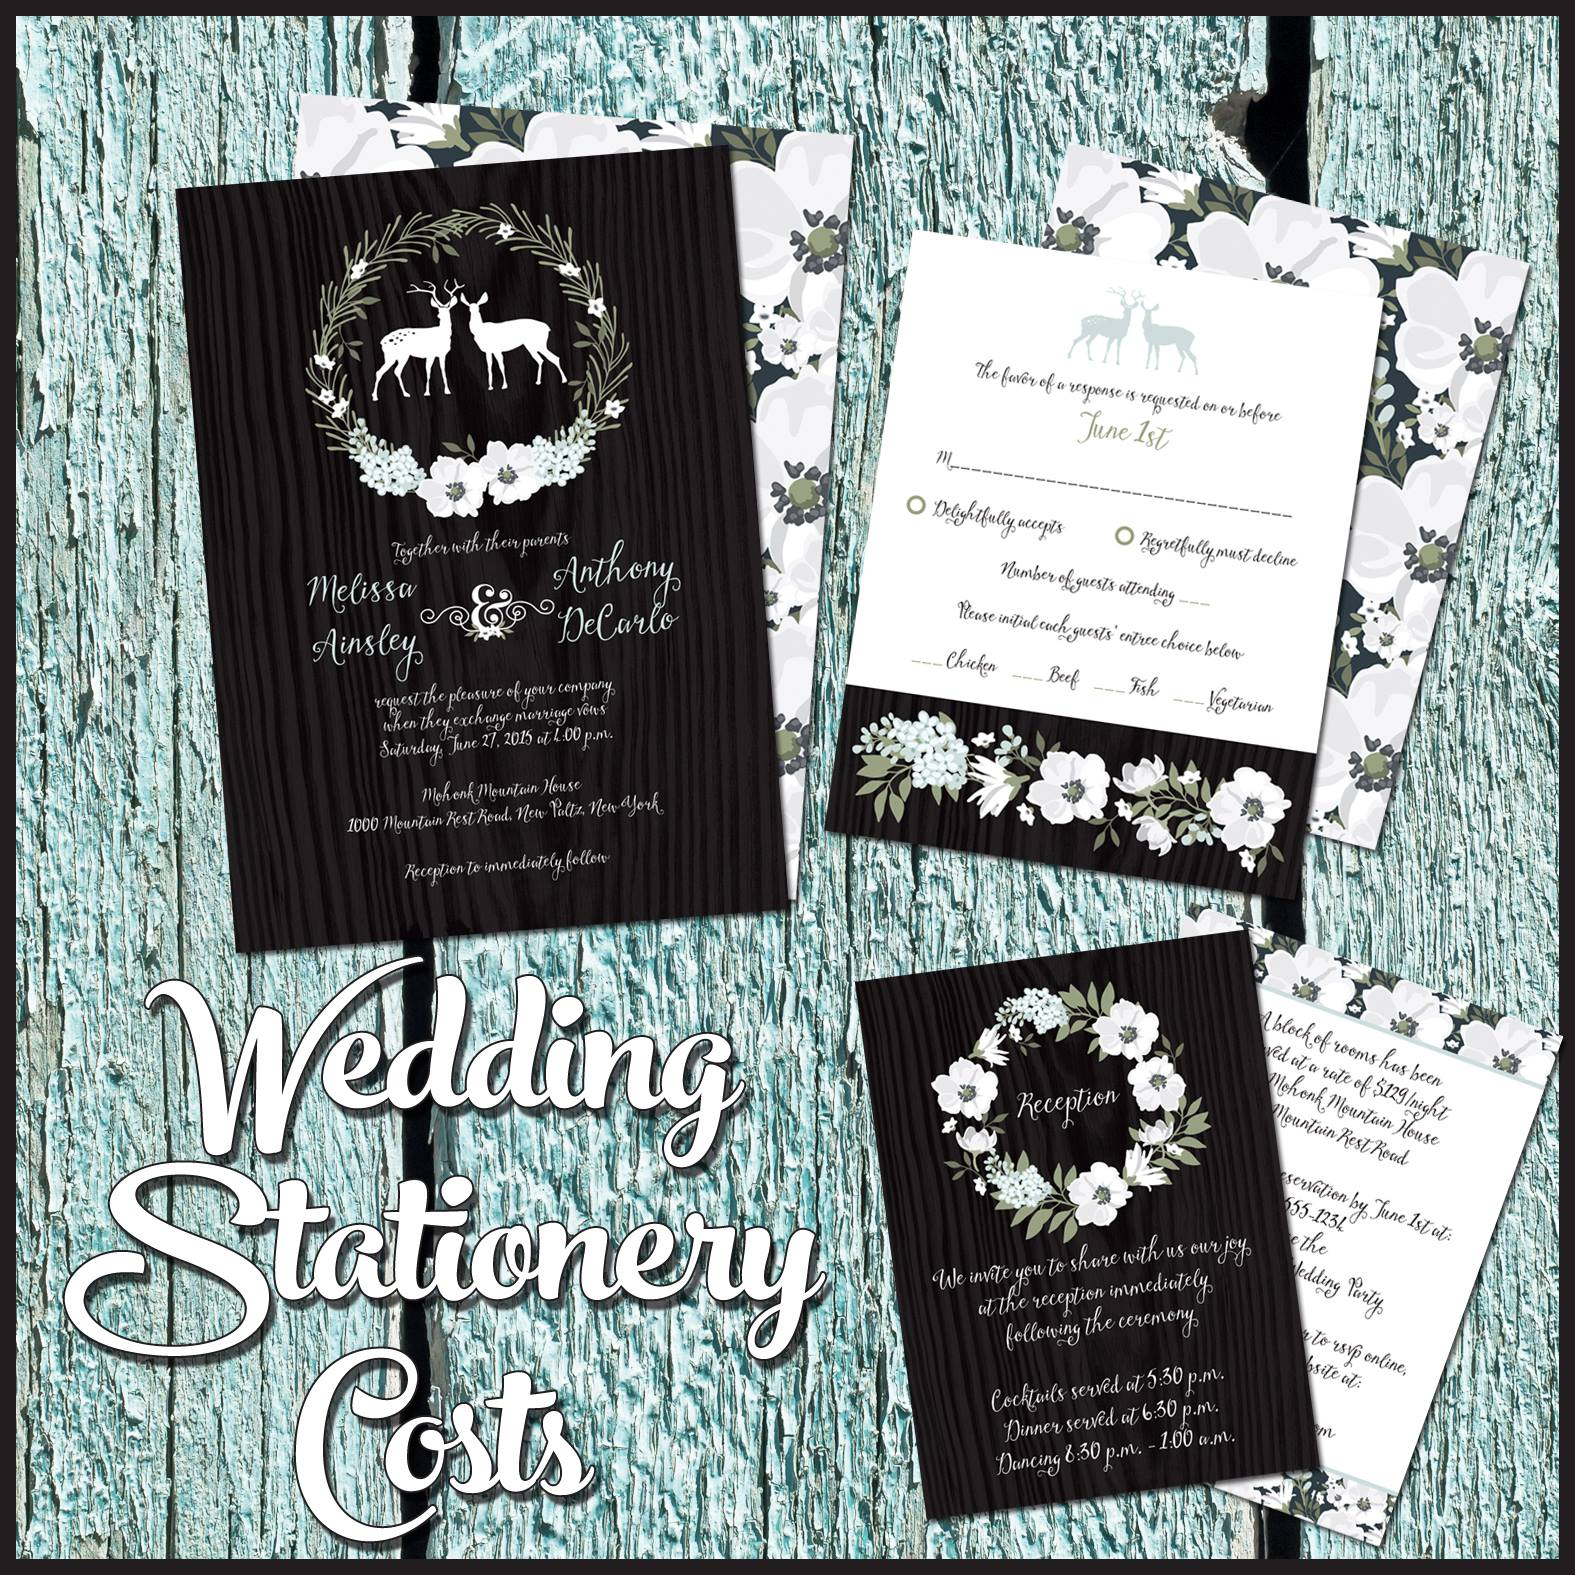 Party simplicity how much should i spend on wedding Wedding invitation cost